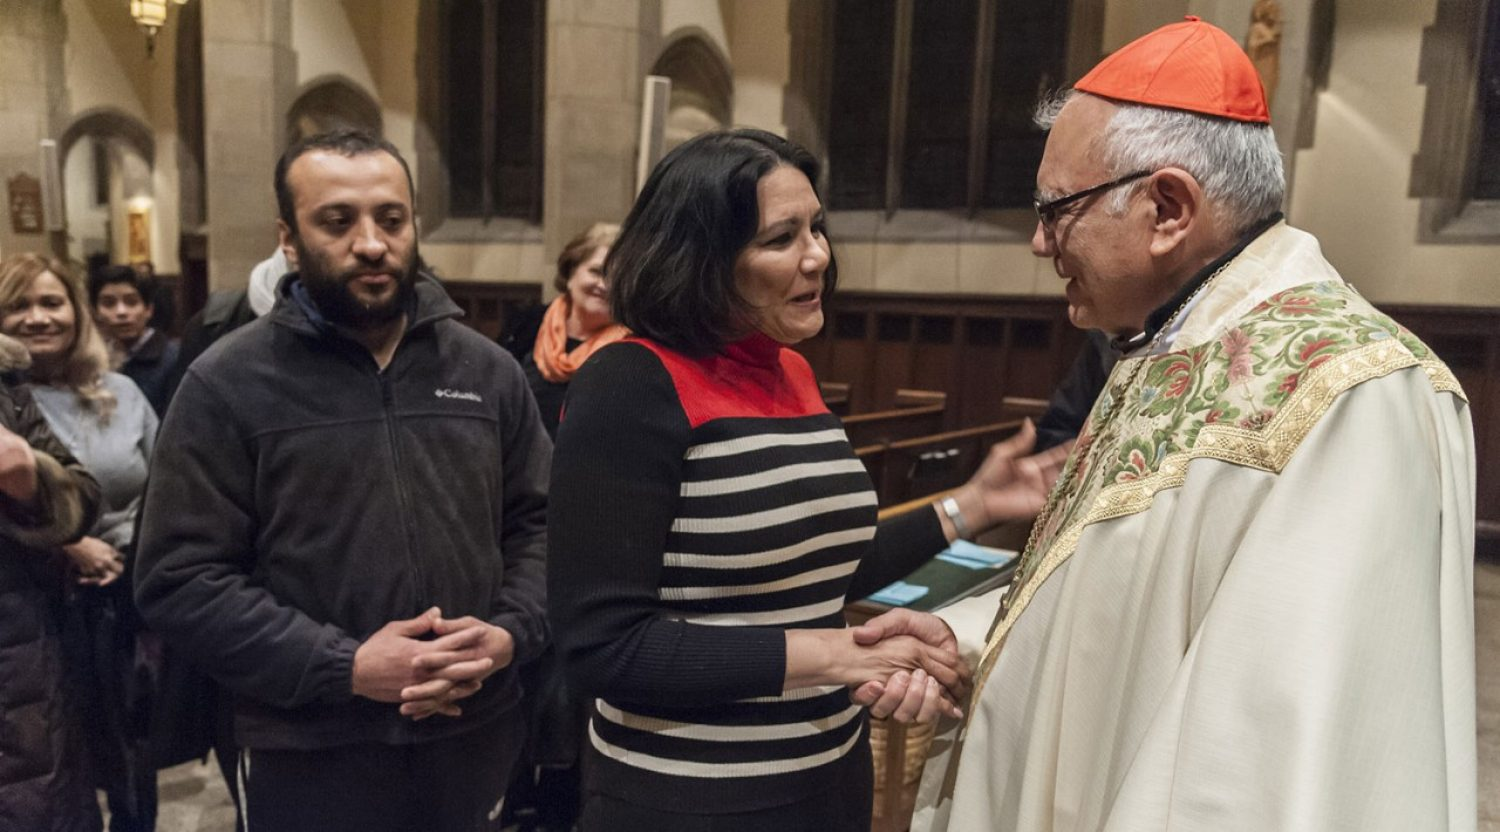 Cardinal Baltazar Porras from the Pontifical Commission for Latin America presided at a Mass for immigrants a St. Ignatius Church, which closed the week-long Ibero-American Conference of Theology at Boston College.